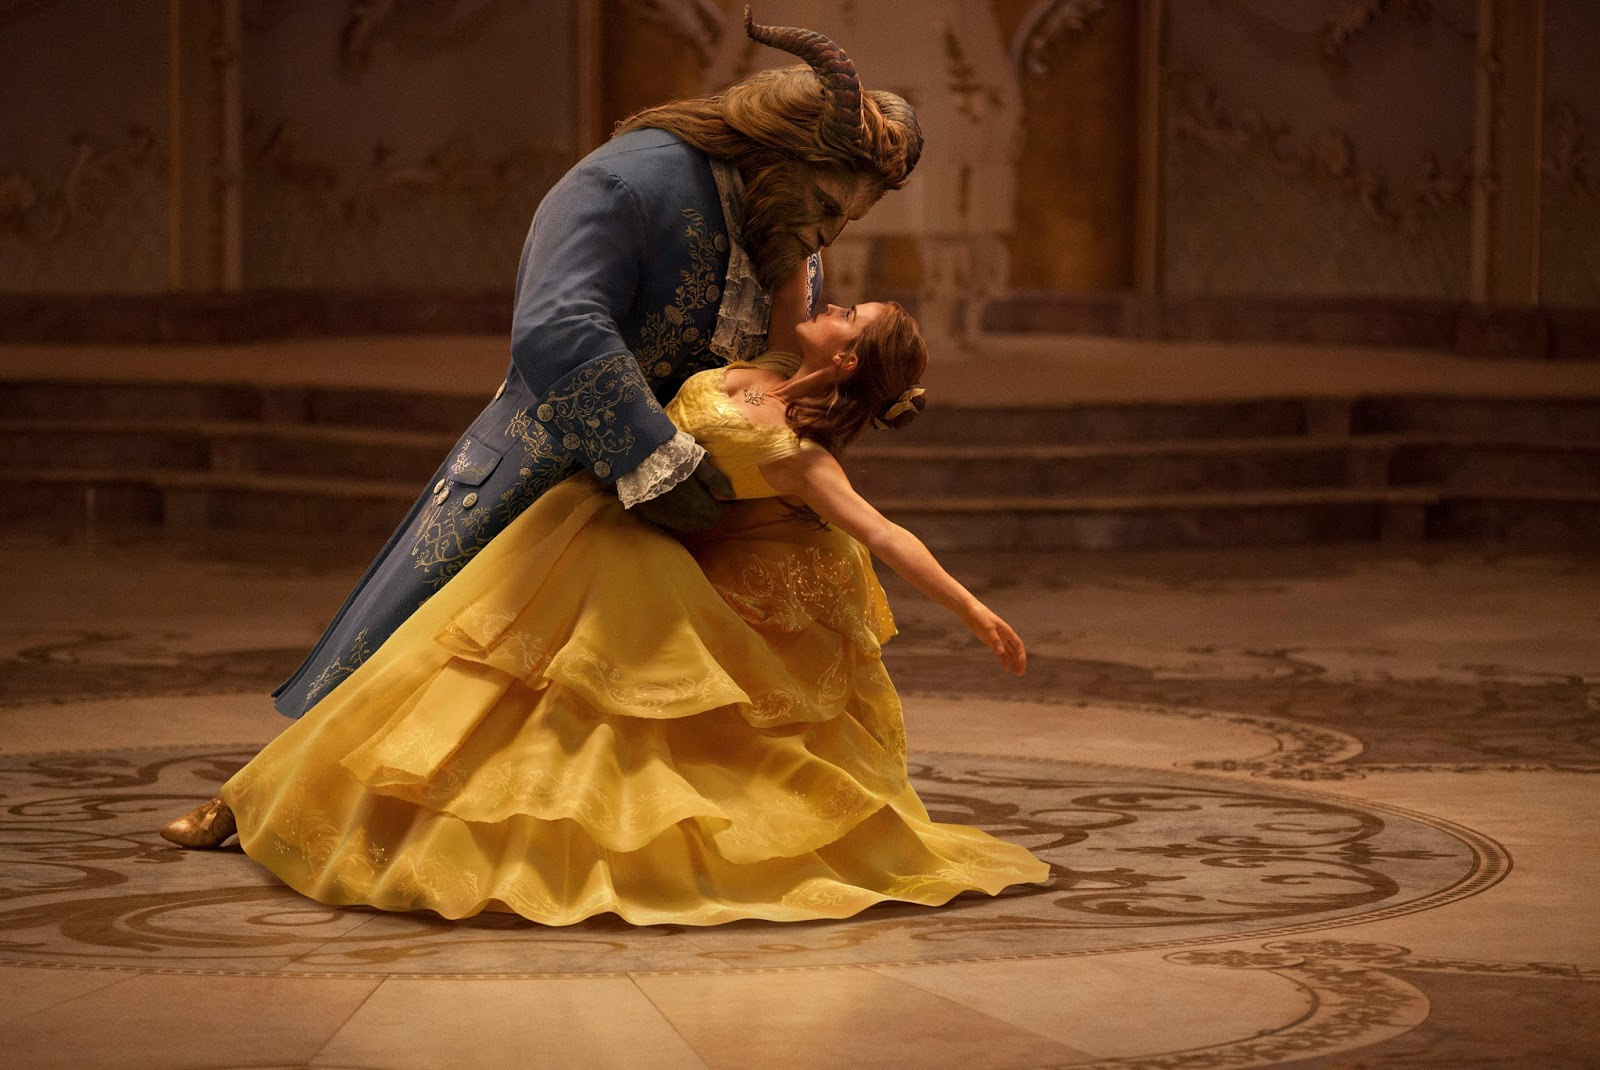 Beauty and the Beast new still